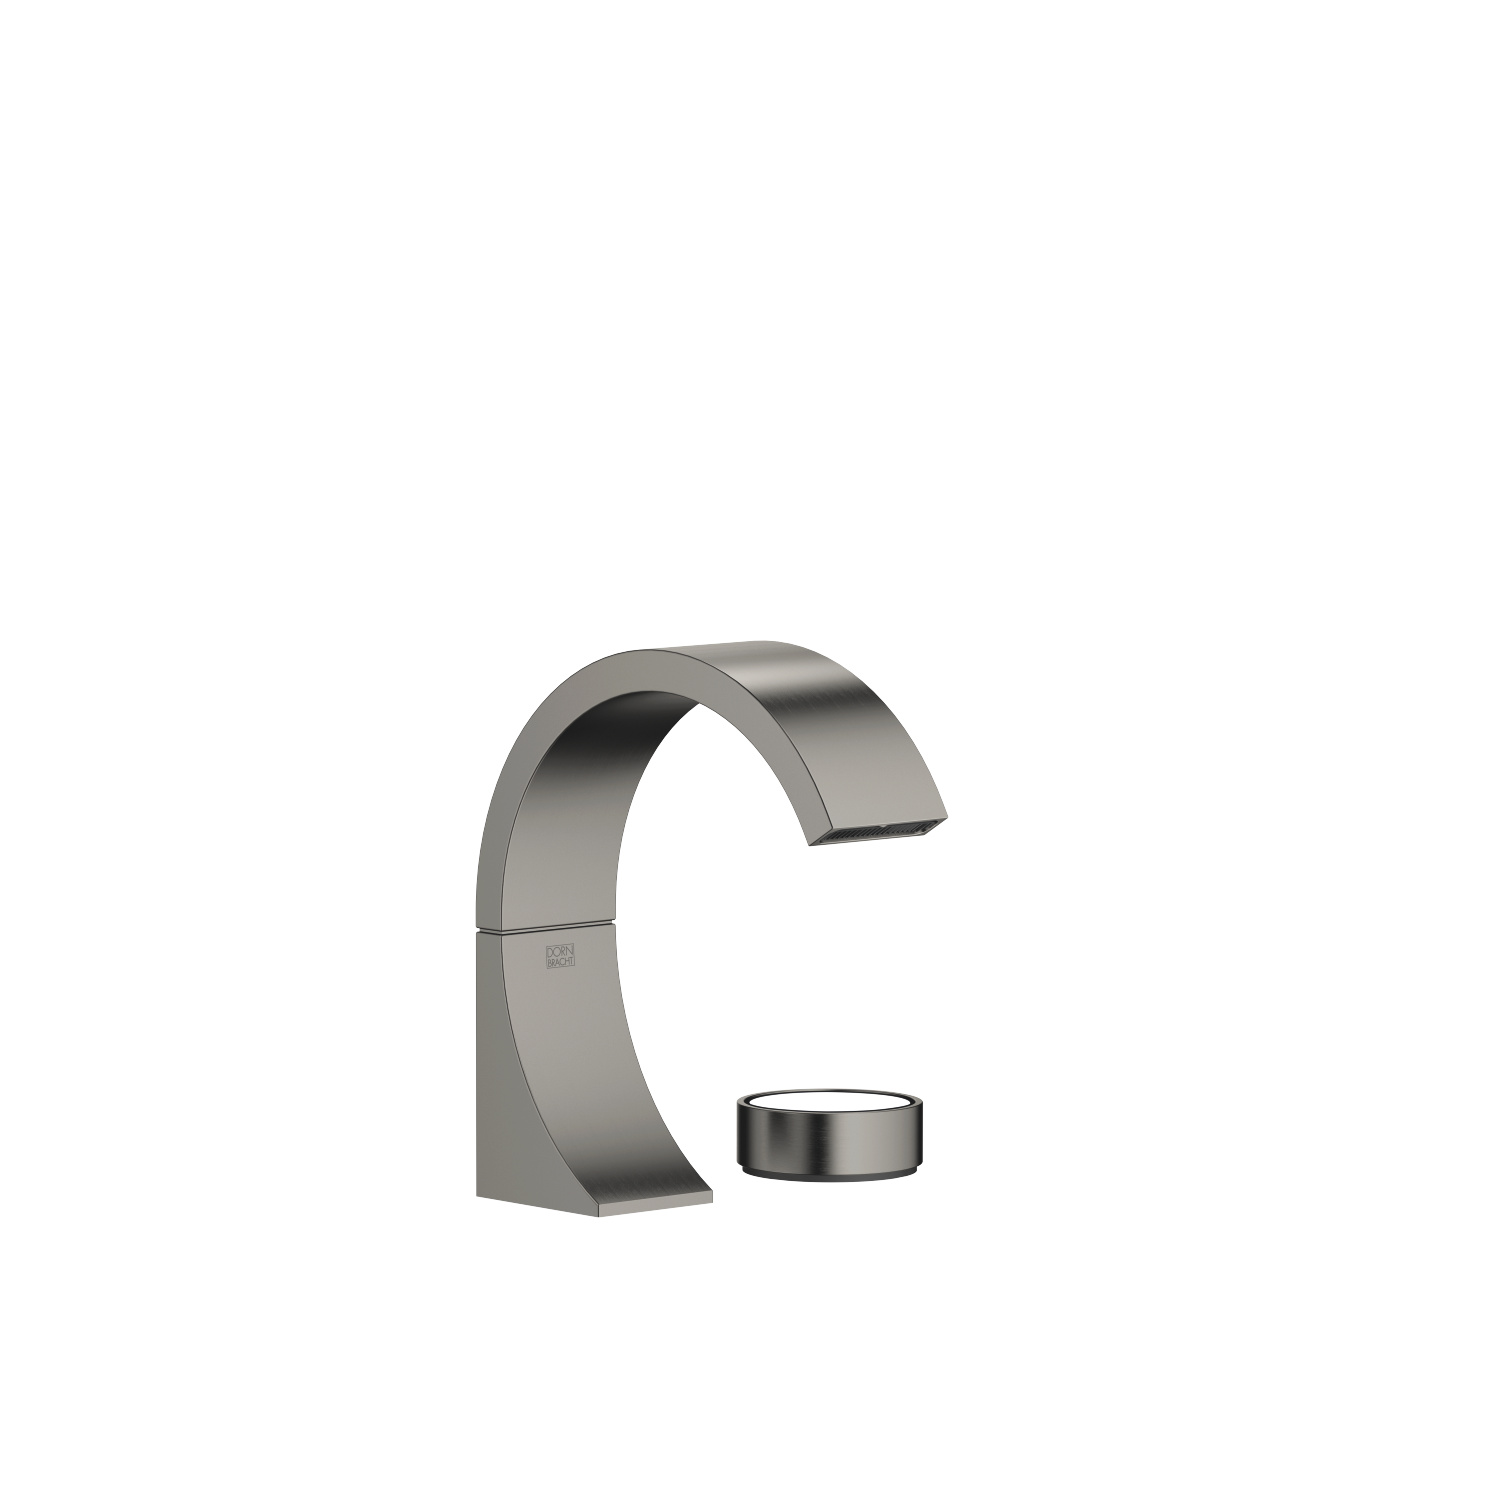 Two-hole lavatory mixer without drain - Dark Platinum matte